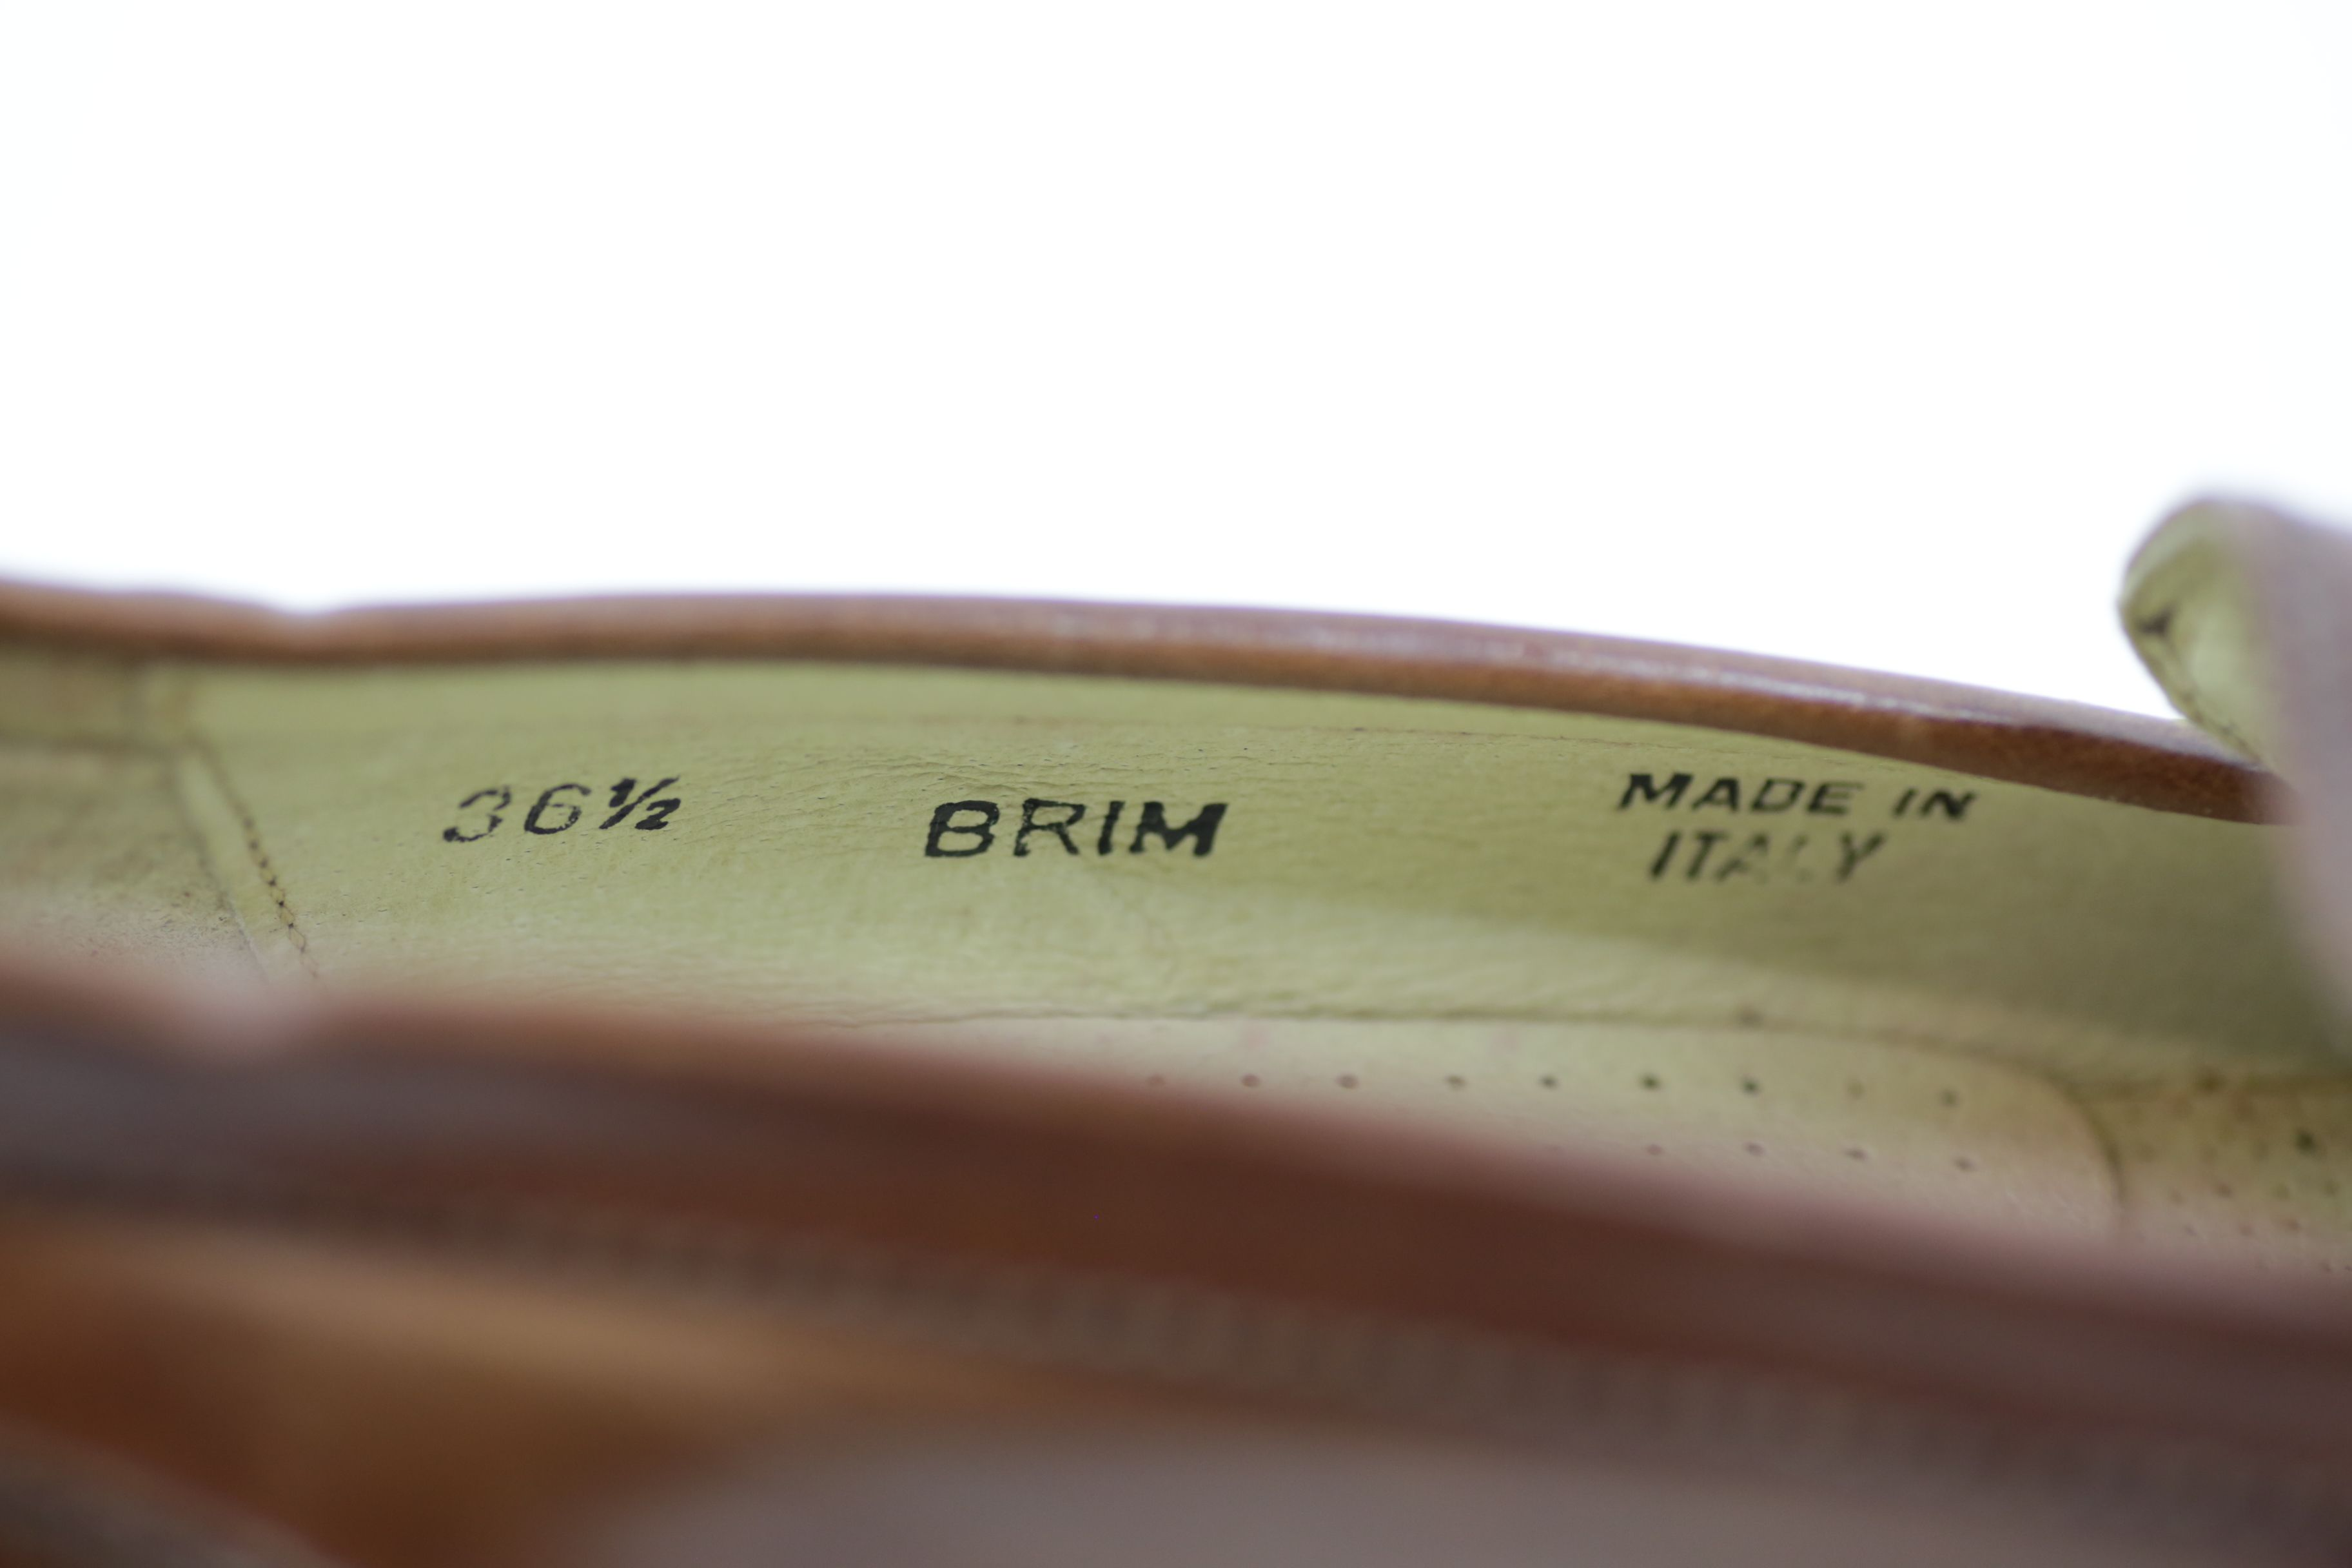 Bally Brim Classic Mid Brown Leather Shoes / Loafers - Size EU 36.5 UK 3.5 Thumbnail 6